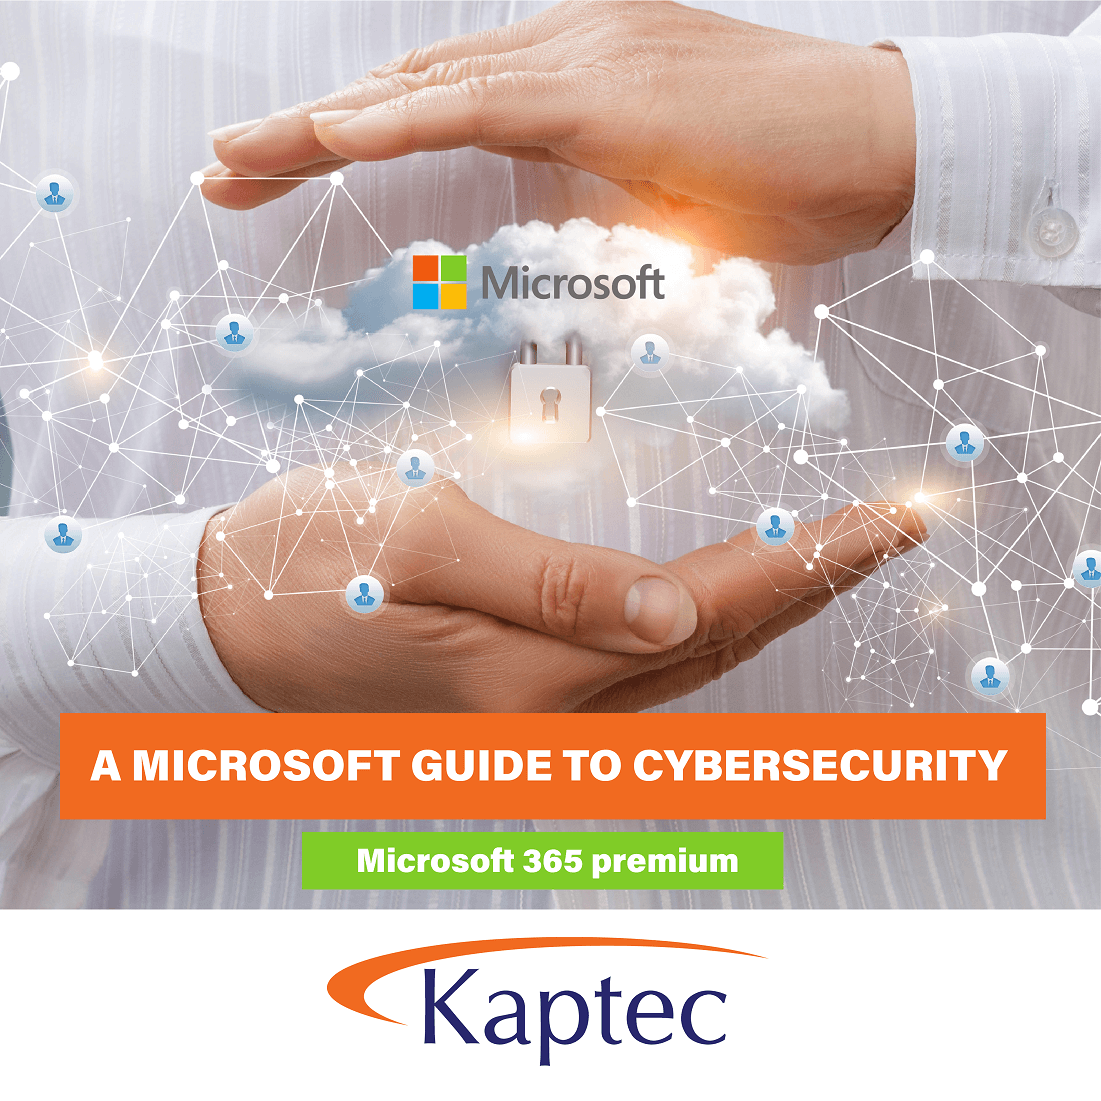 Kaptec Banners graphic 03 - A Microsoft Guide to Cybersecurity